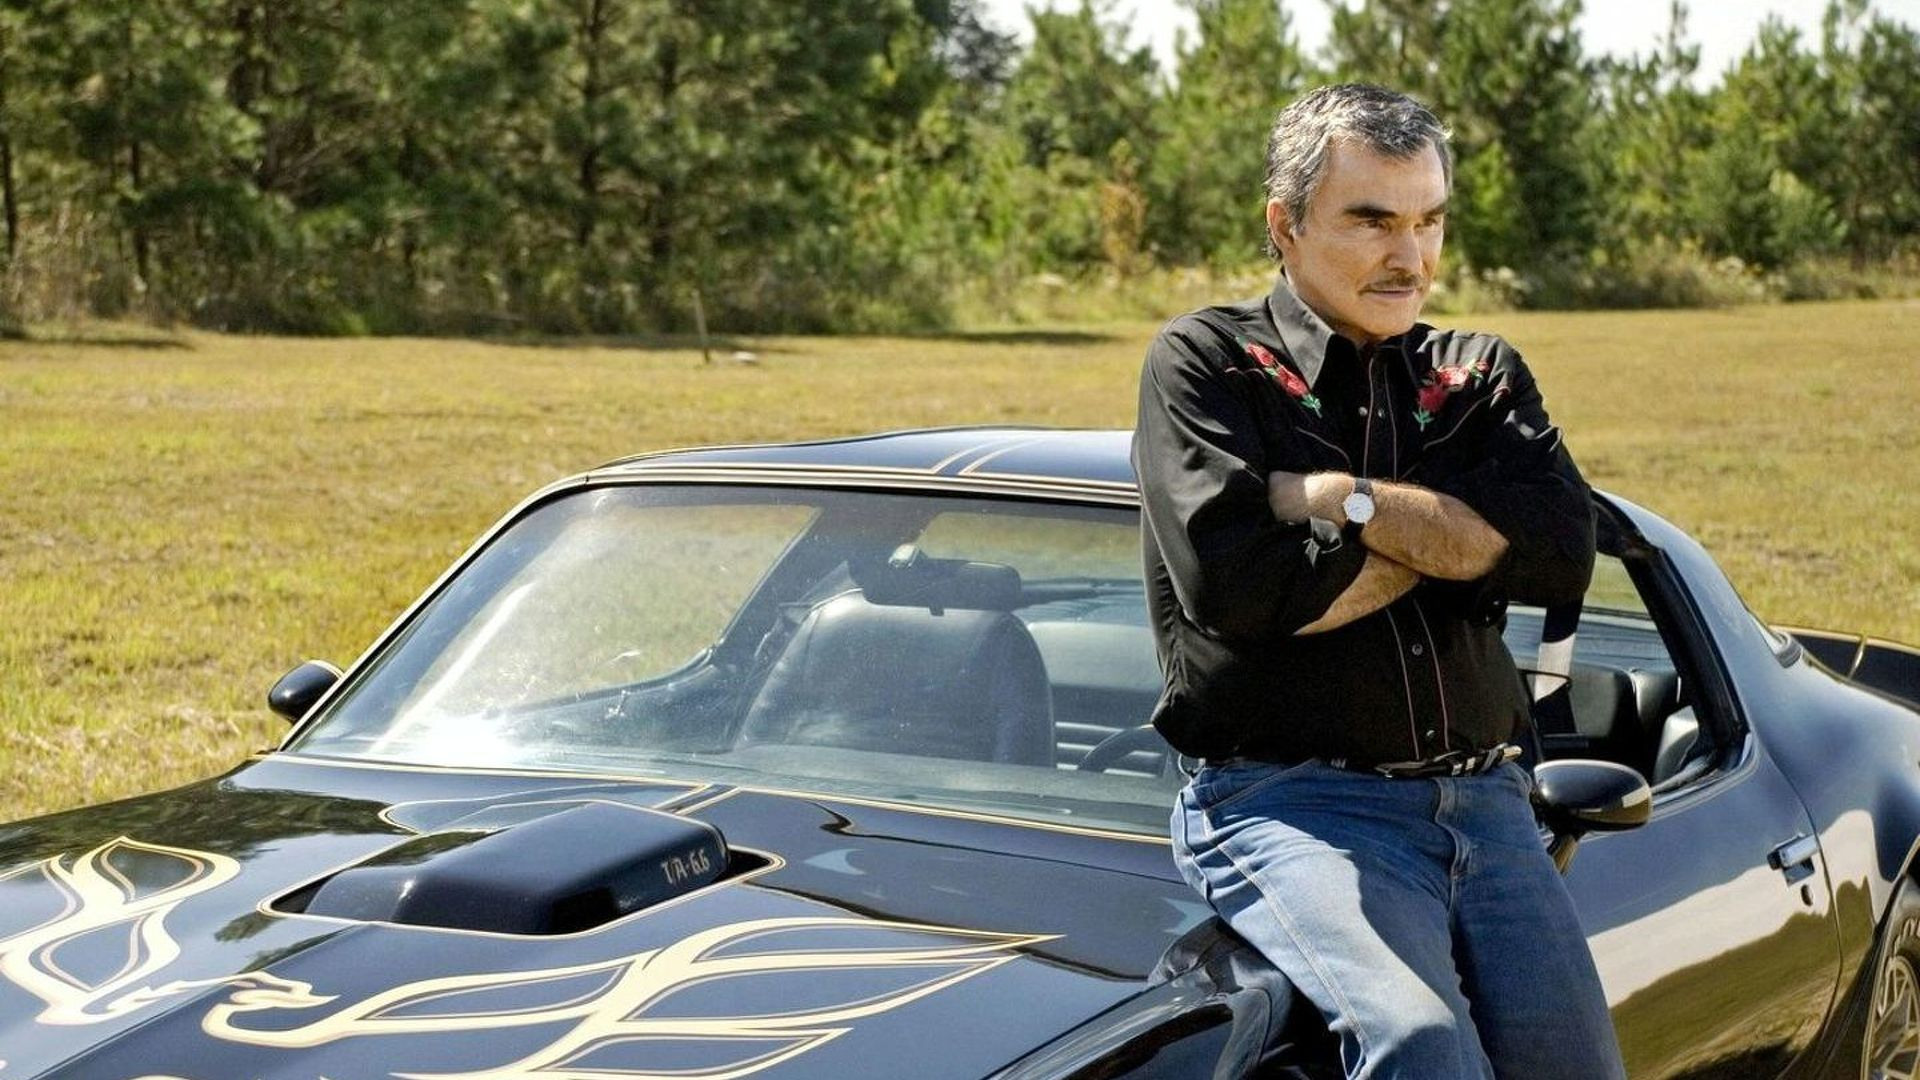 The Bandit is Back!